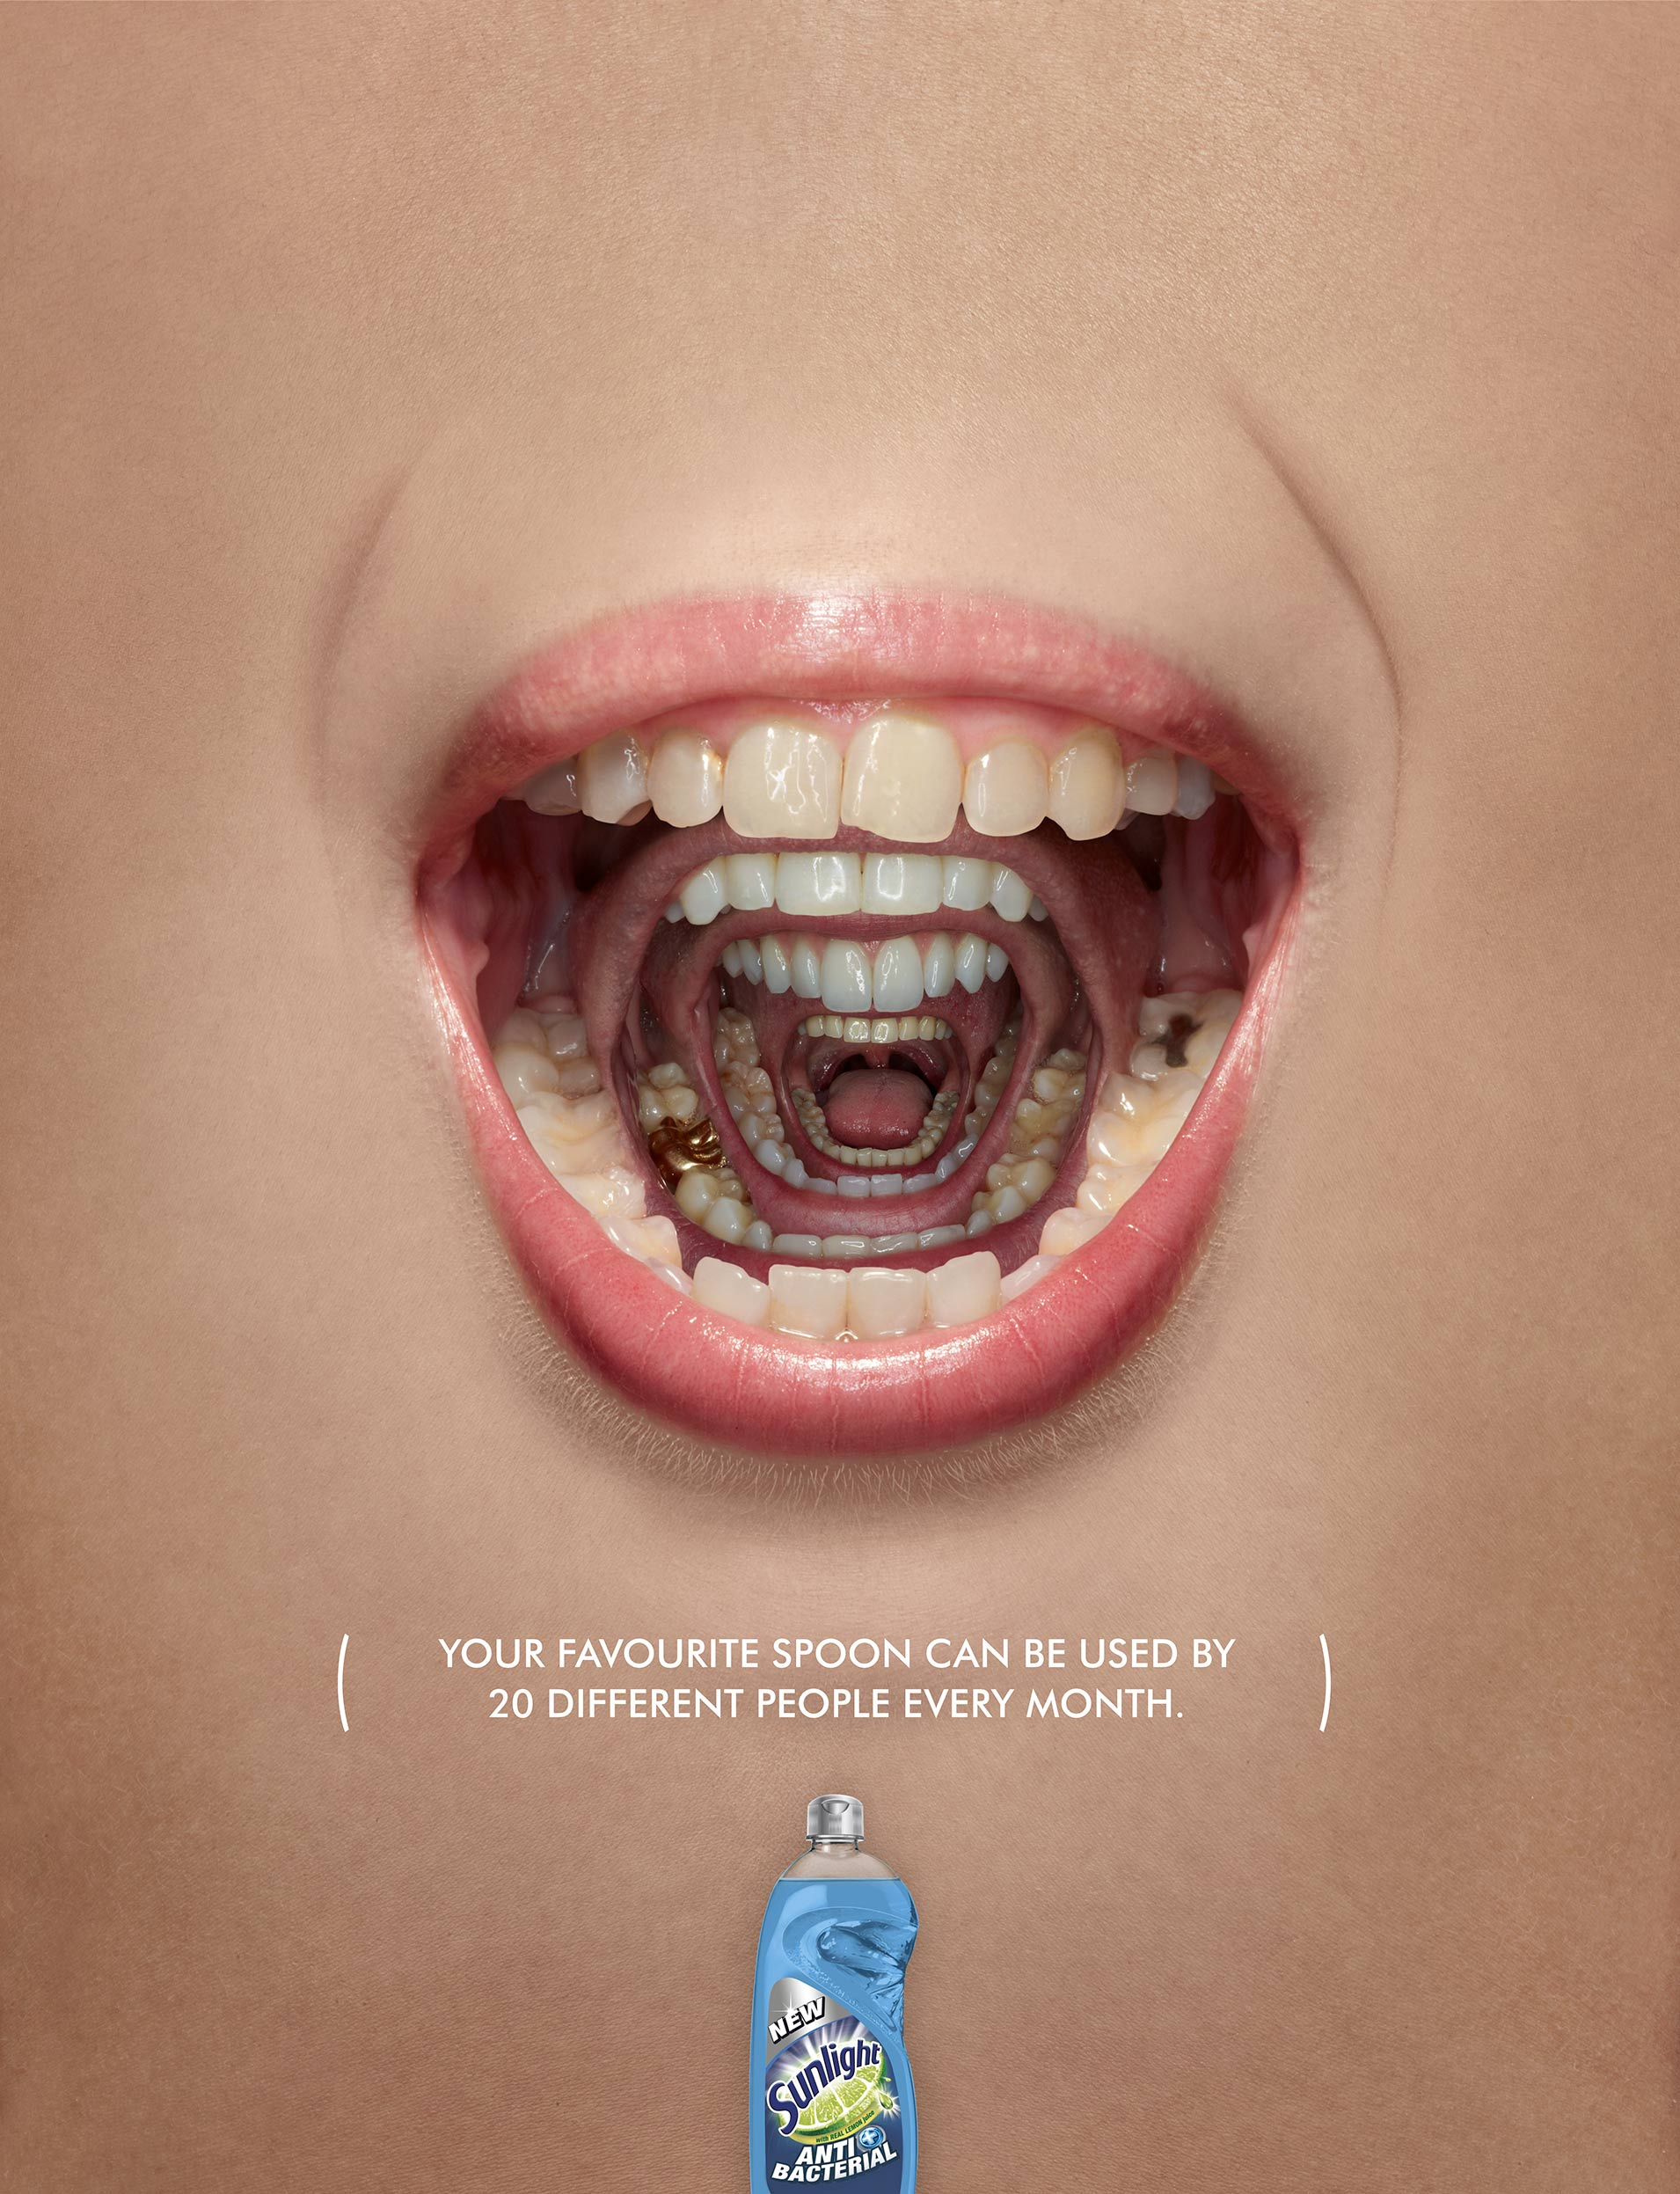 Mouth_in_Mouth_Composite_Layout_3